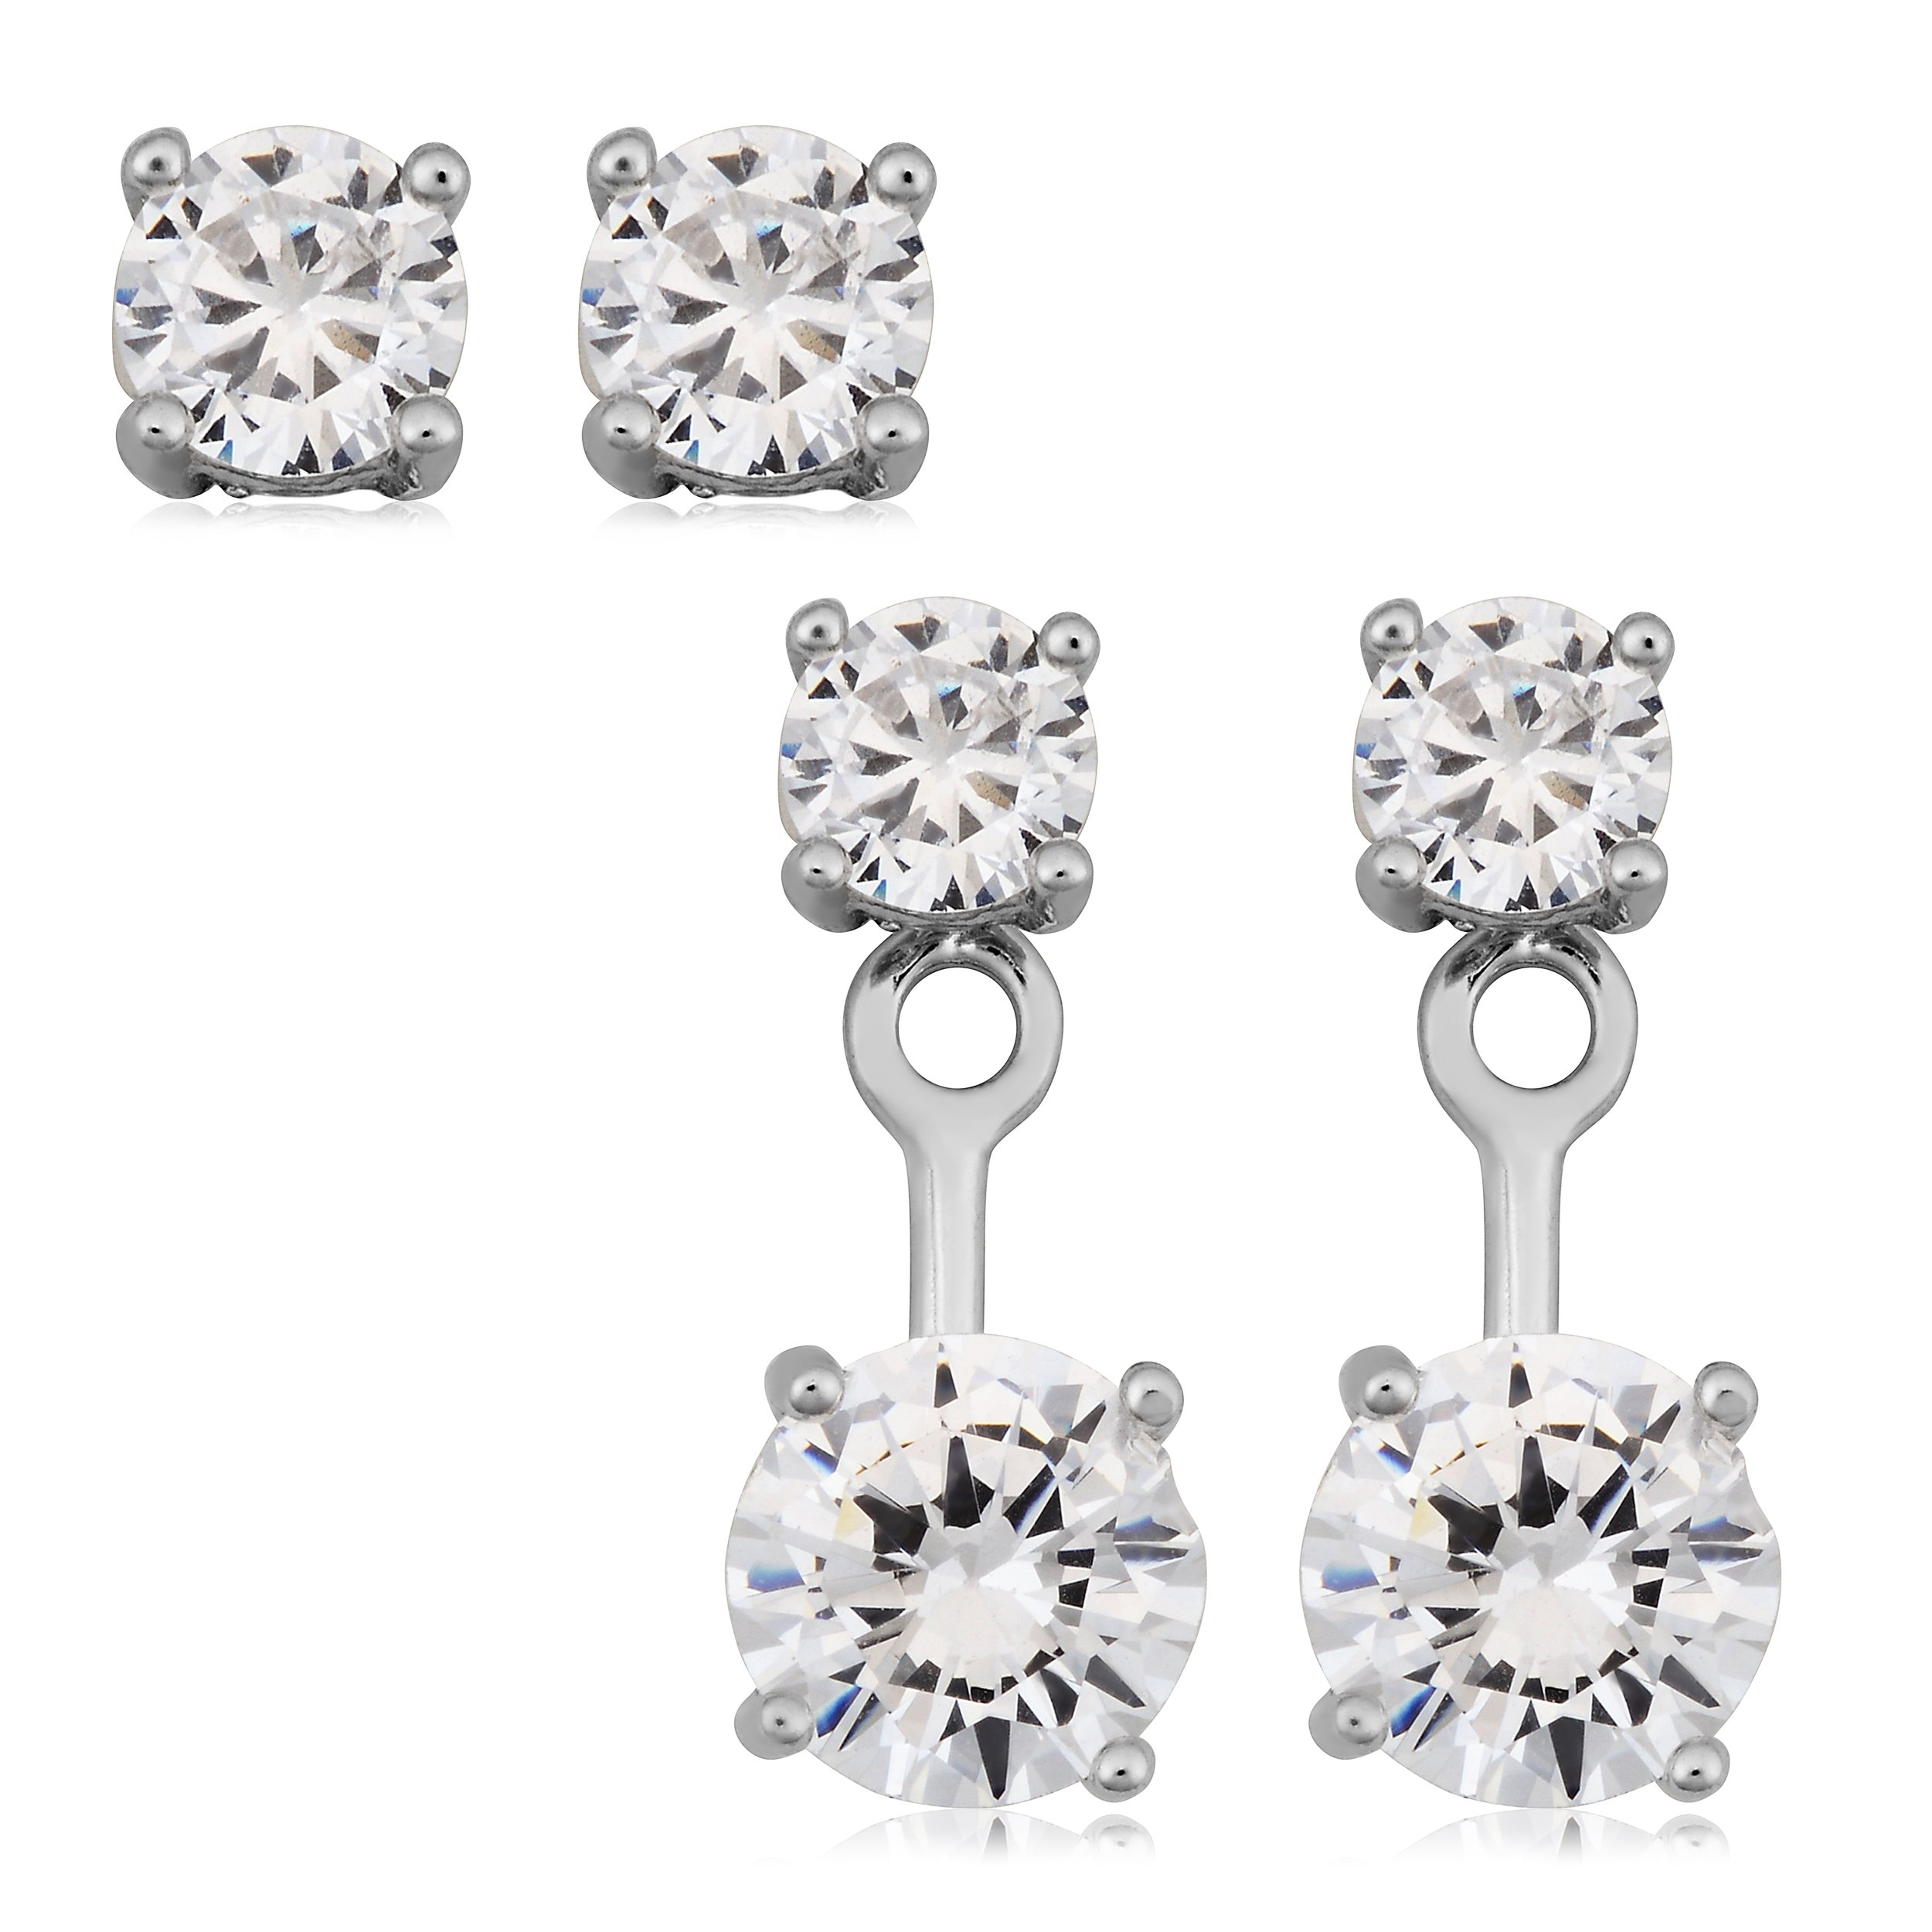 Sterling Silver Front Back 2 in 1 With Cubic Zirconia Stud And Ear Jacket Earrings Set